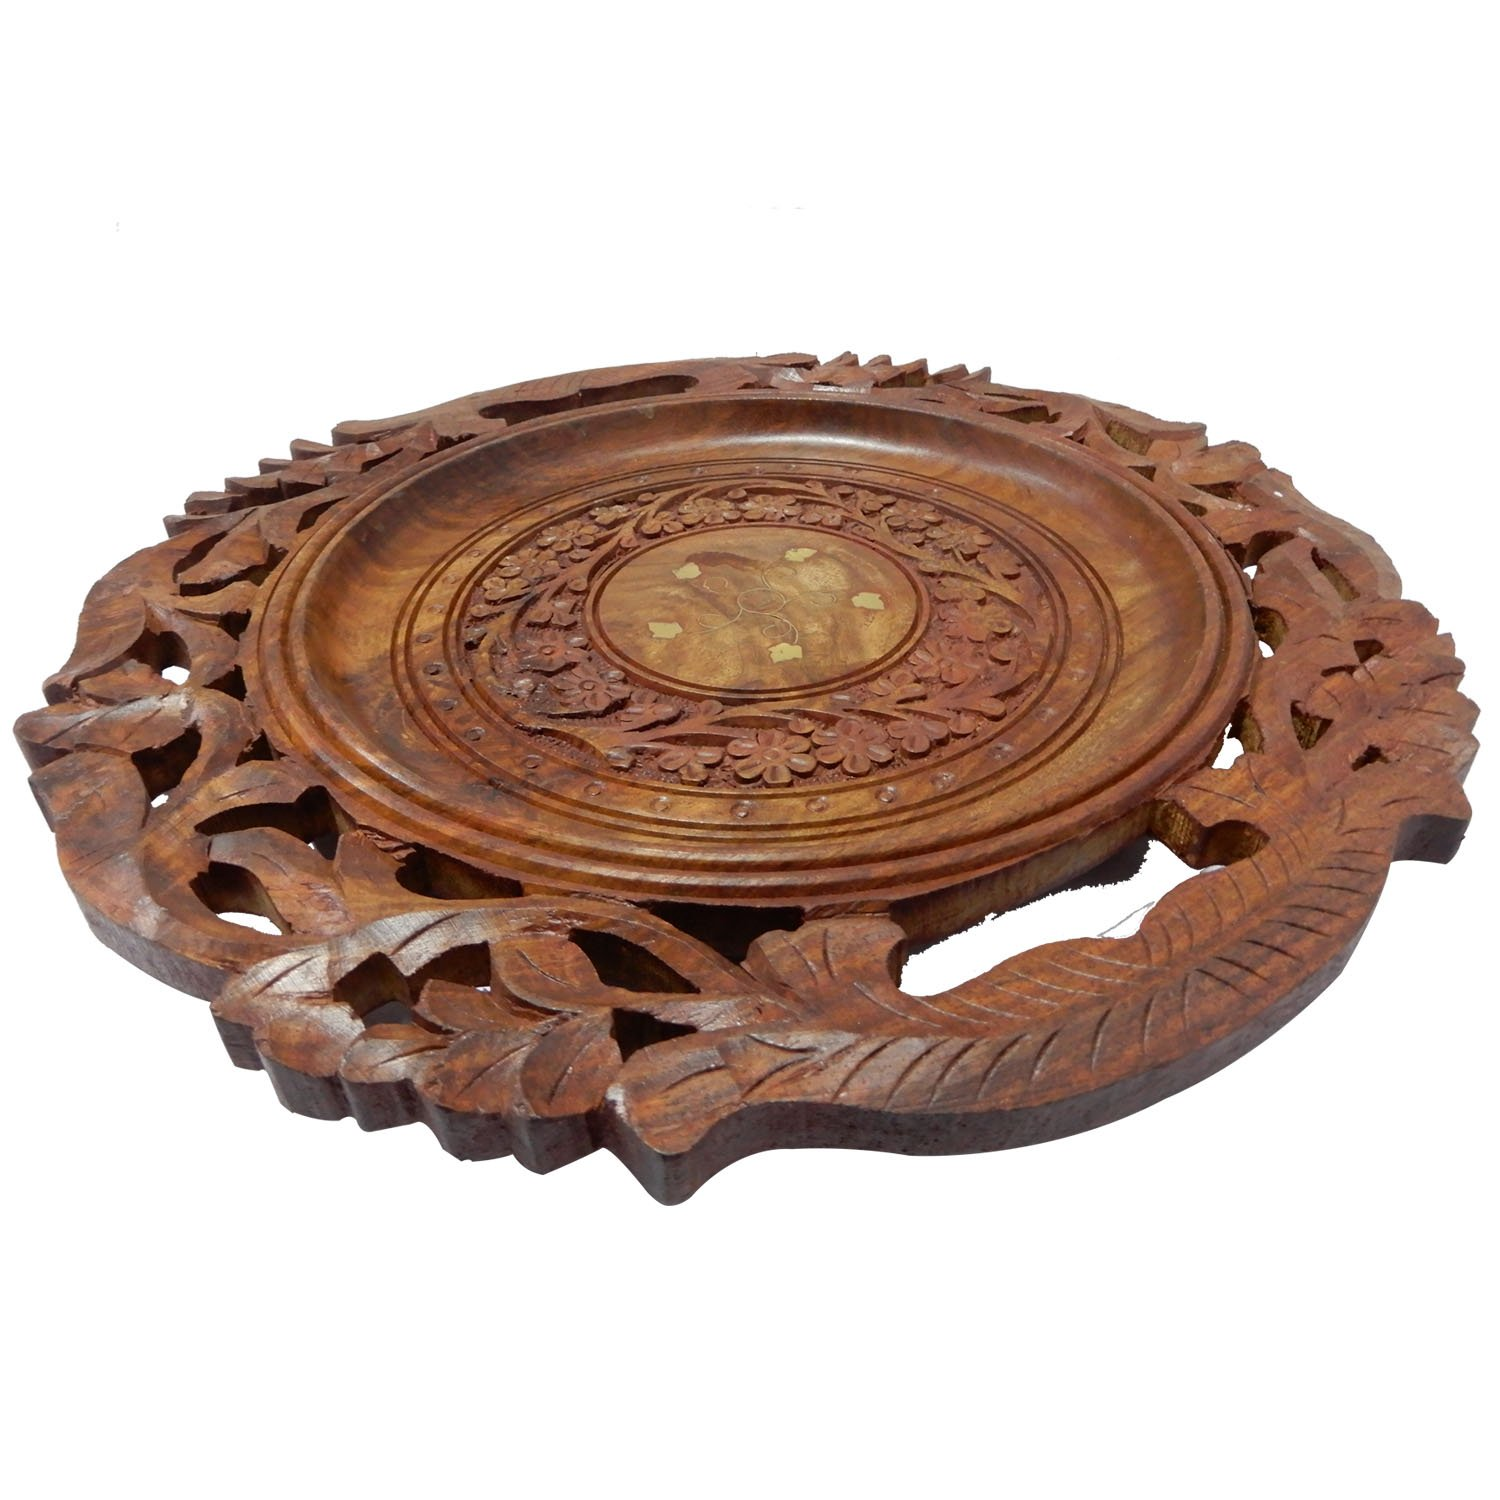 IndiaBigShop Handmade Wooden Decorative Snack and Coffee Serving Tray With Carving Work and Handle Serving Tray 12 Inch IBS0559